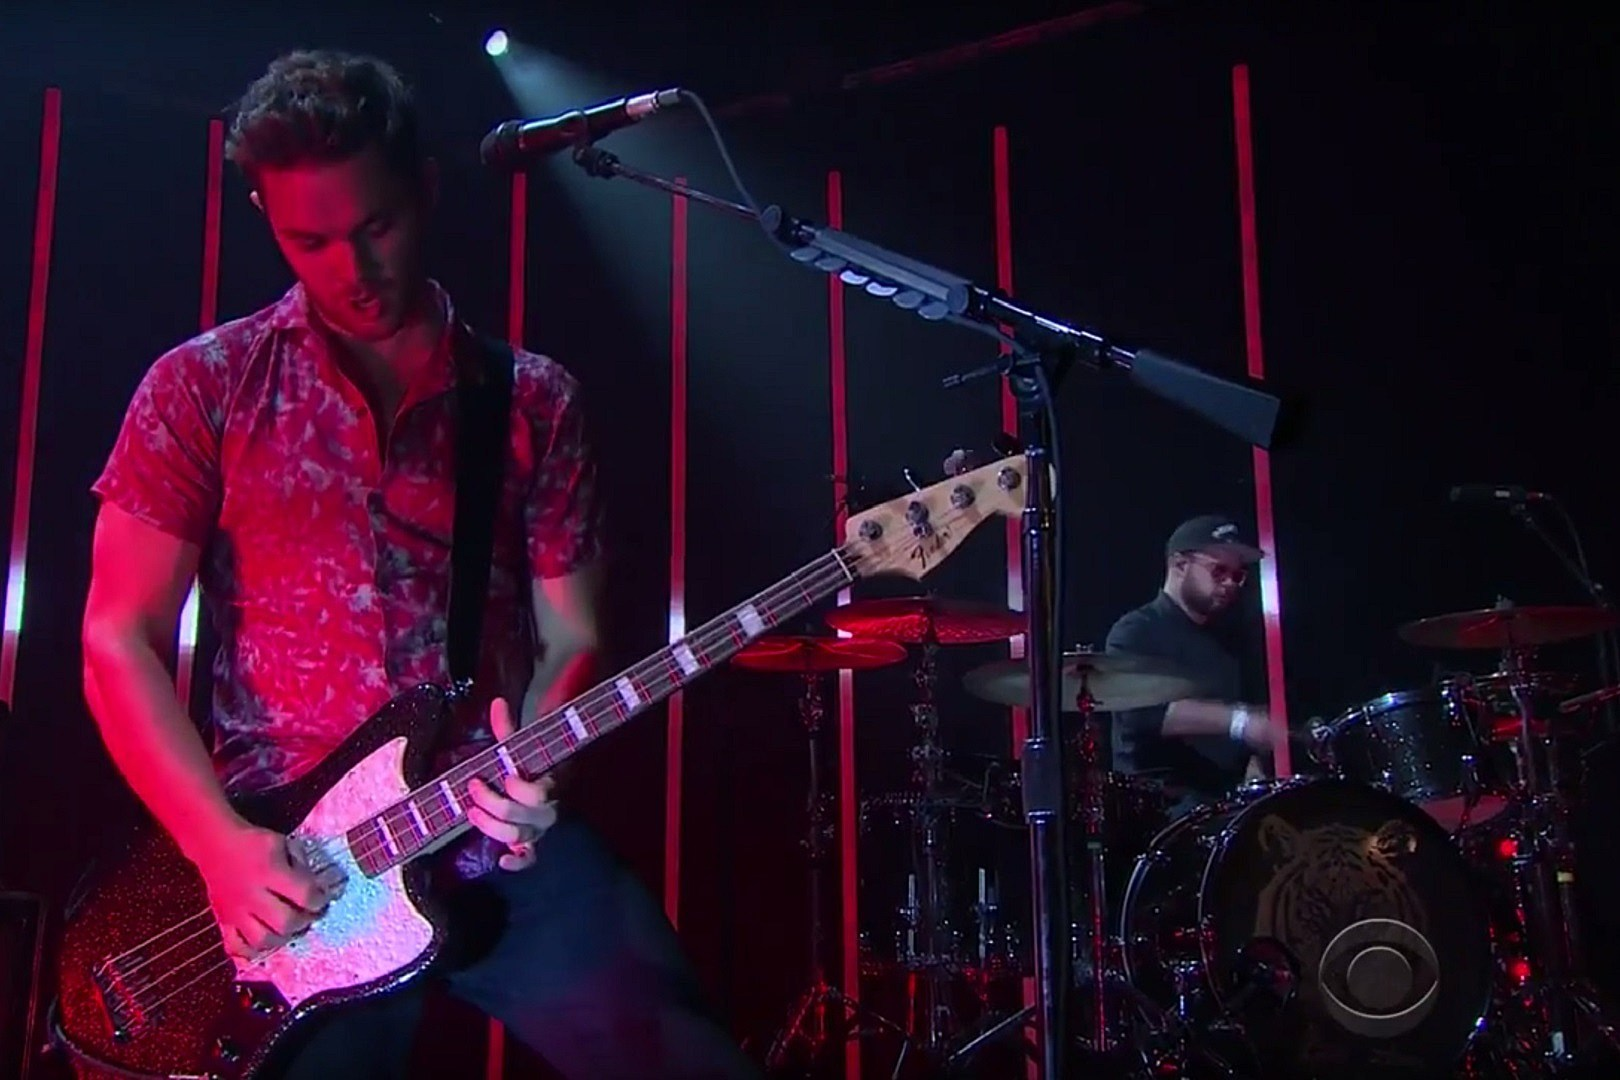 Royal Blood Turn the 'Lights Out' on 'The Late Late Show'